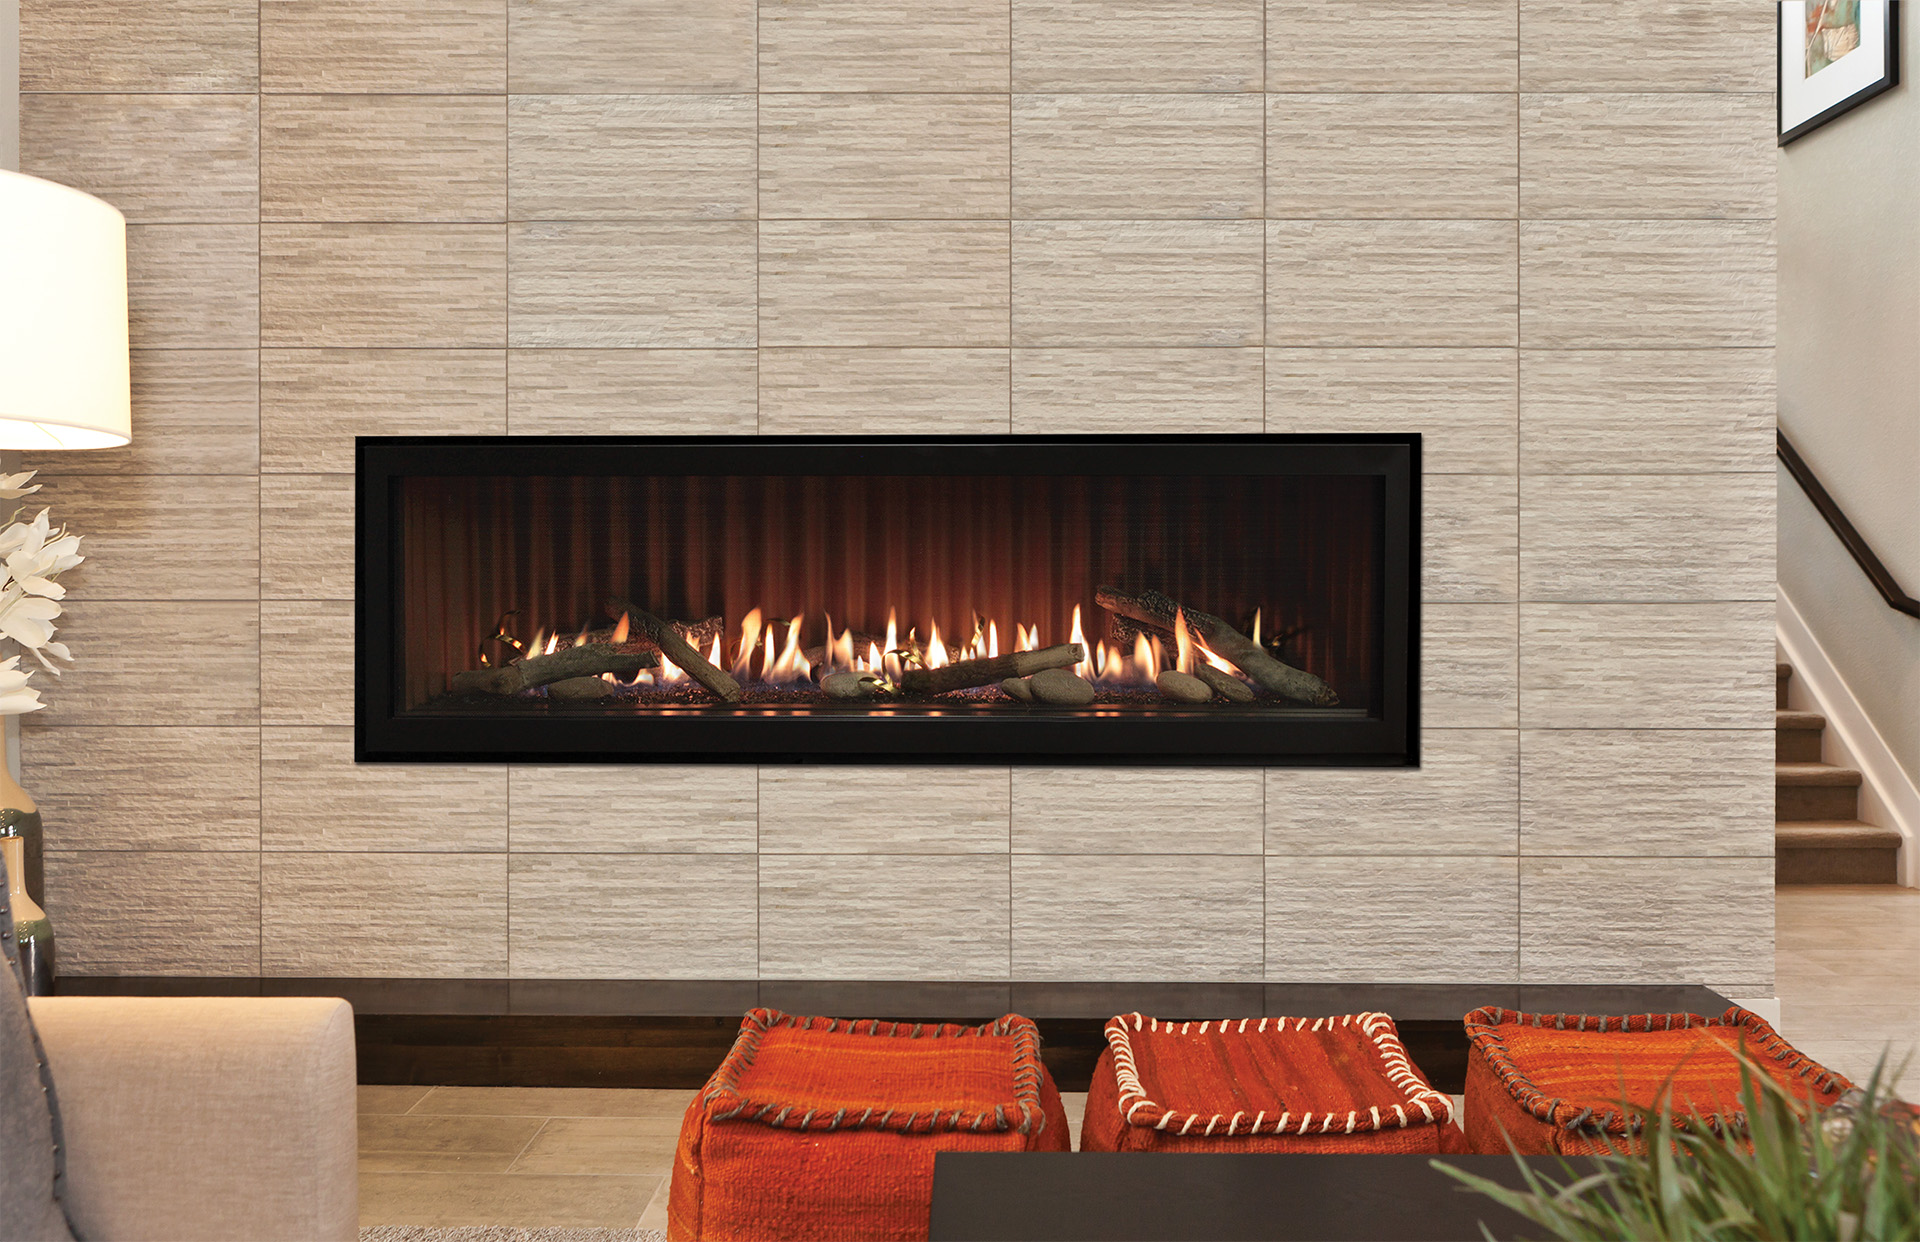 Design Linear Fireplace boulevard fireplaces linear direct vent white mountain hearth at a full five feet wide 60 inch fireplace provides the perfect scale for todays large spaces from spa